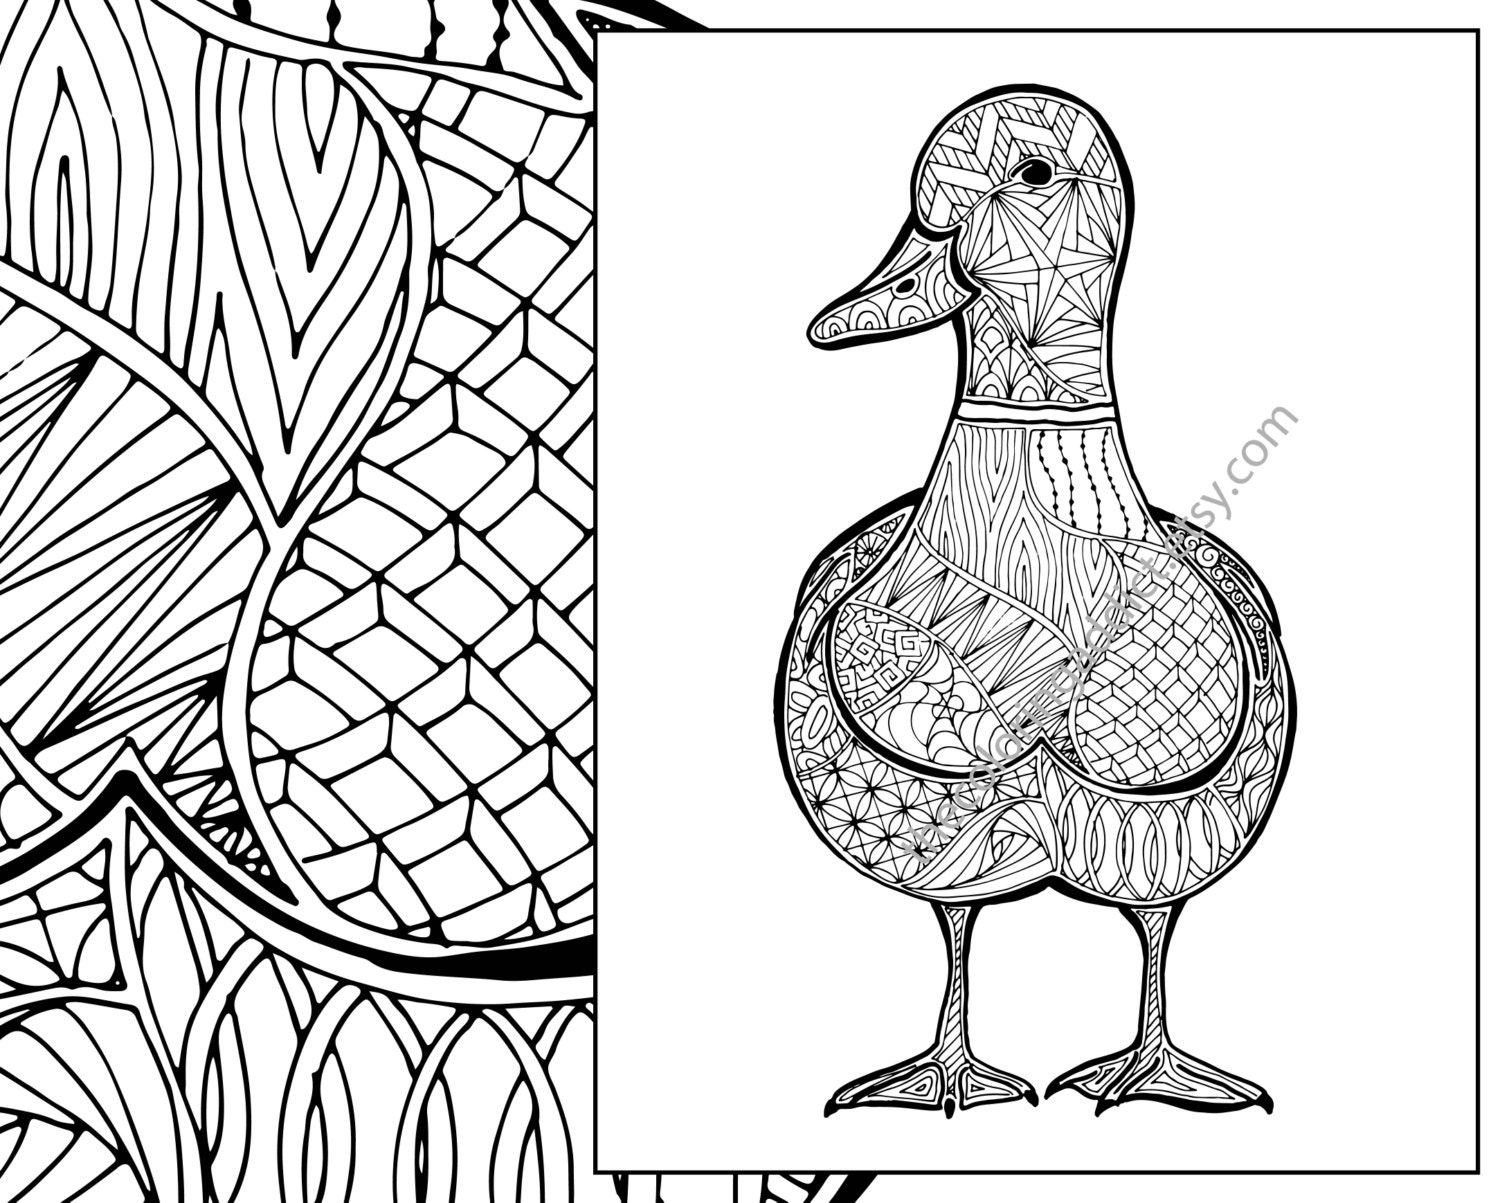 zentangle duck colouring page animal colouring zentangle